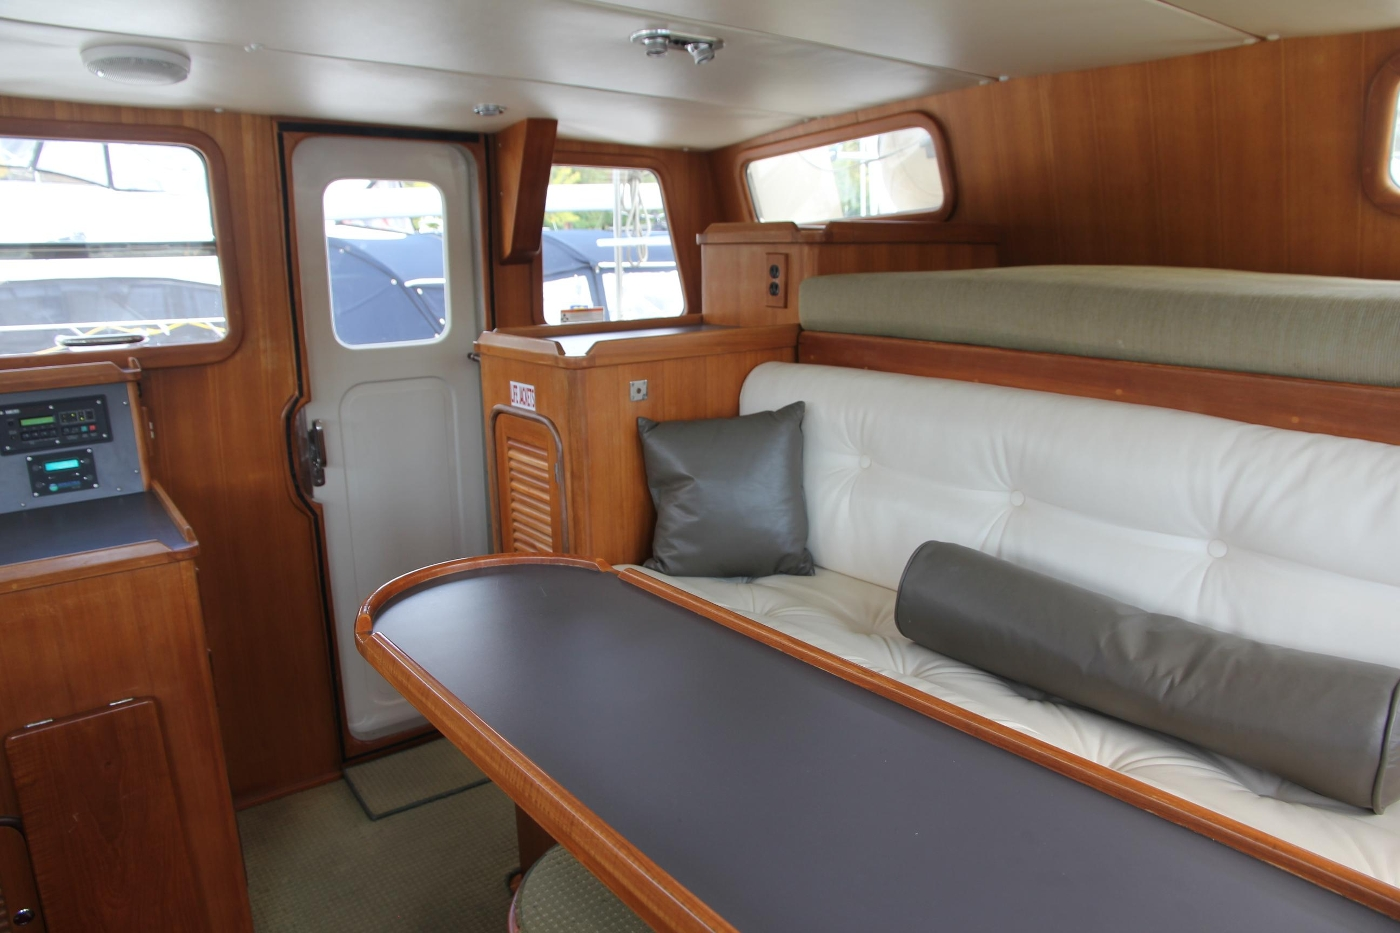 2000 Nordhavn Pilothouse, Pilothouse Settee and Table